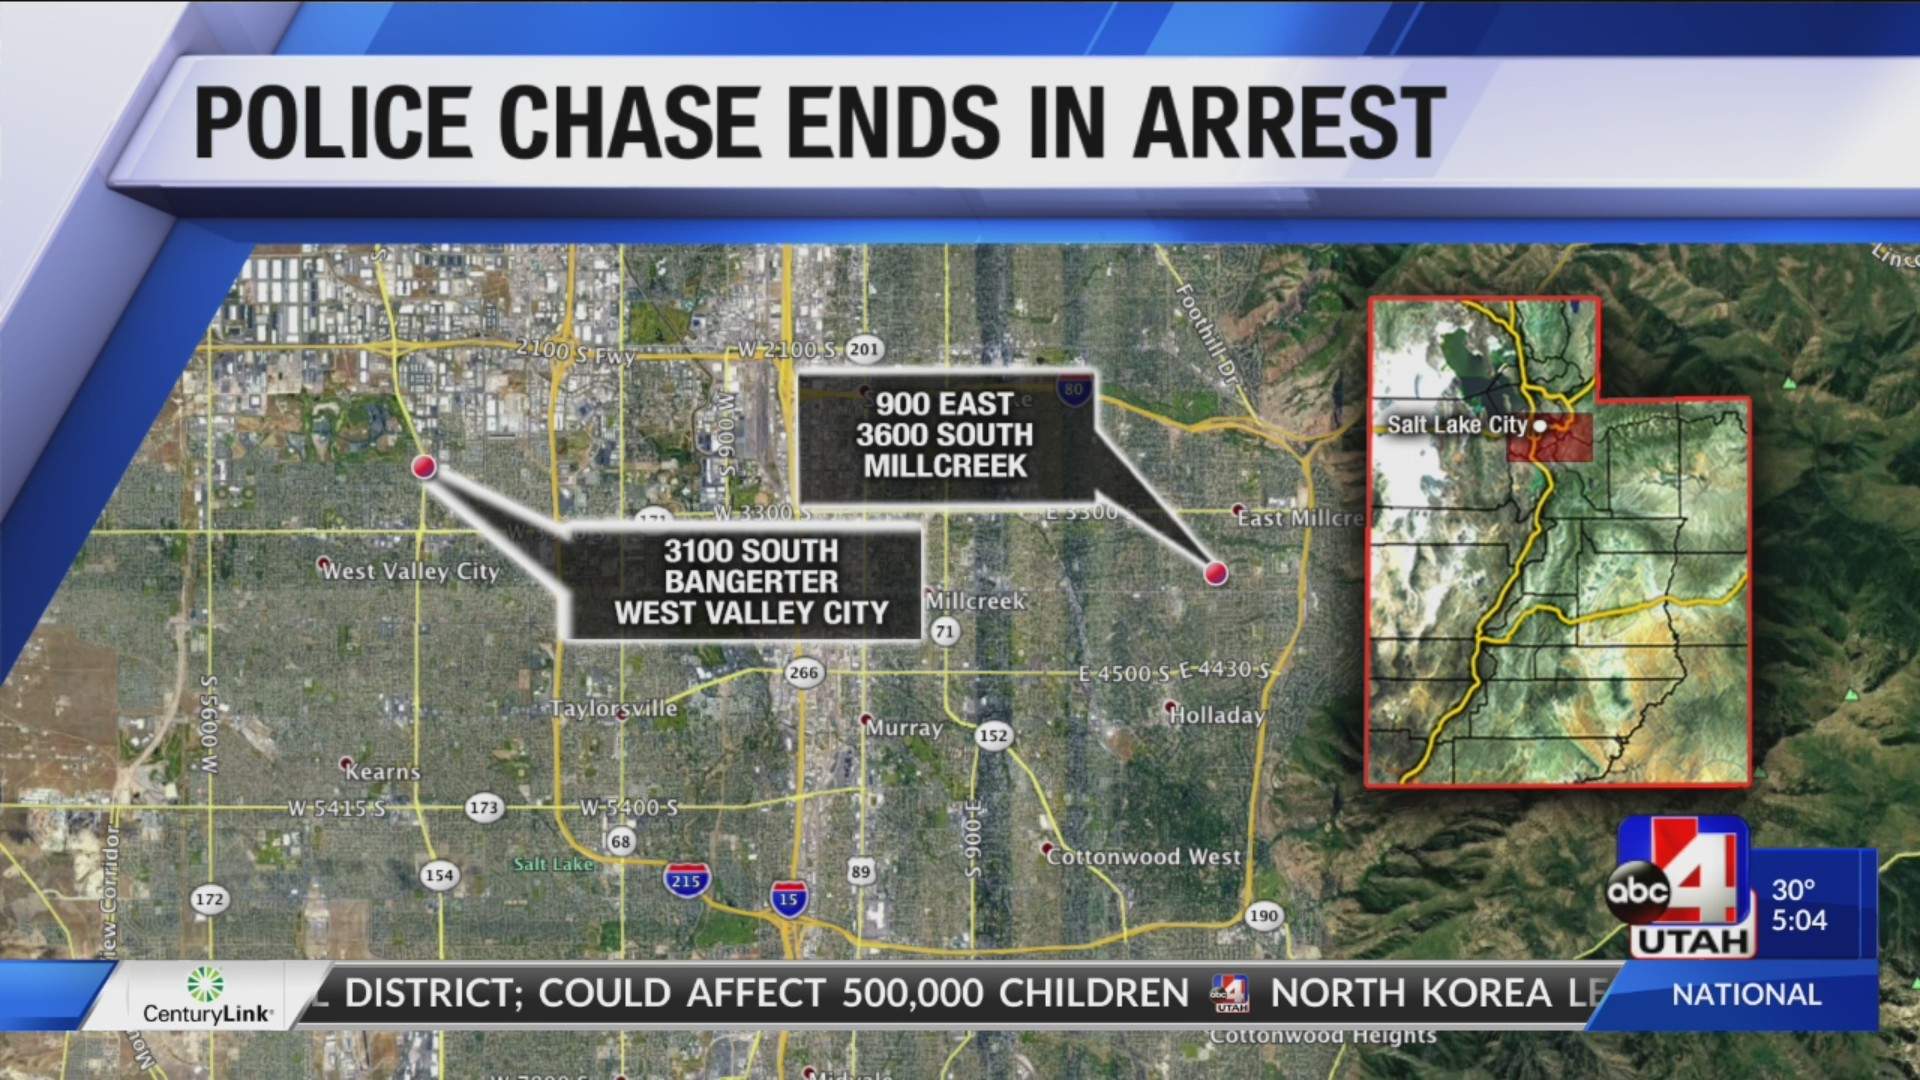 POLICE CHASE ENDS IN ARREST